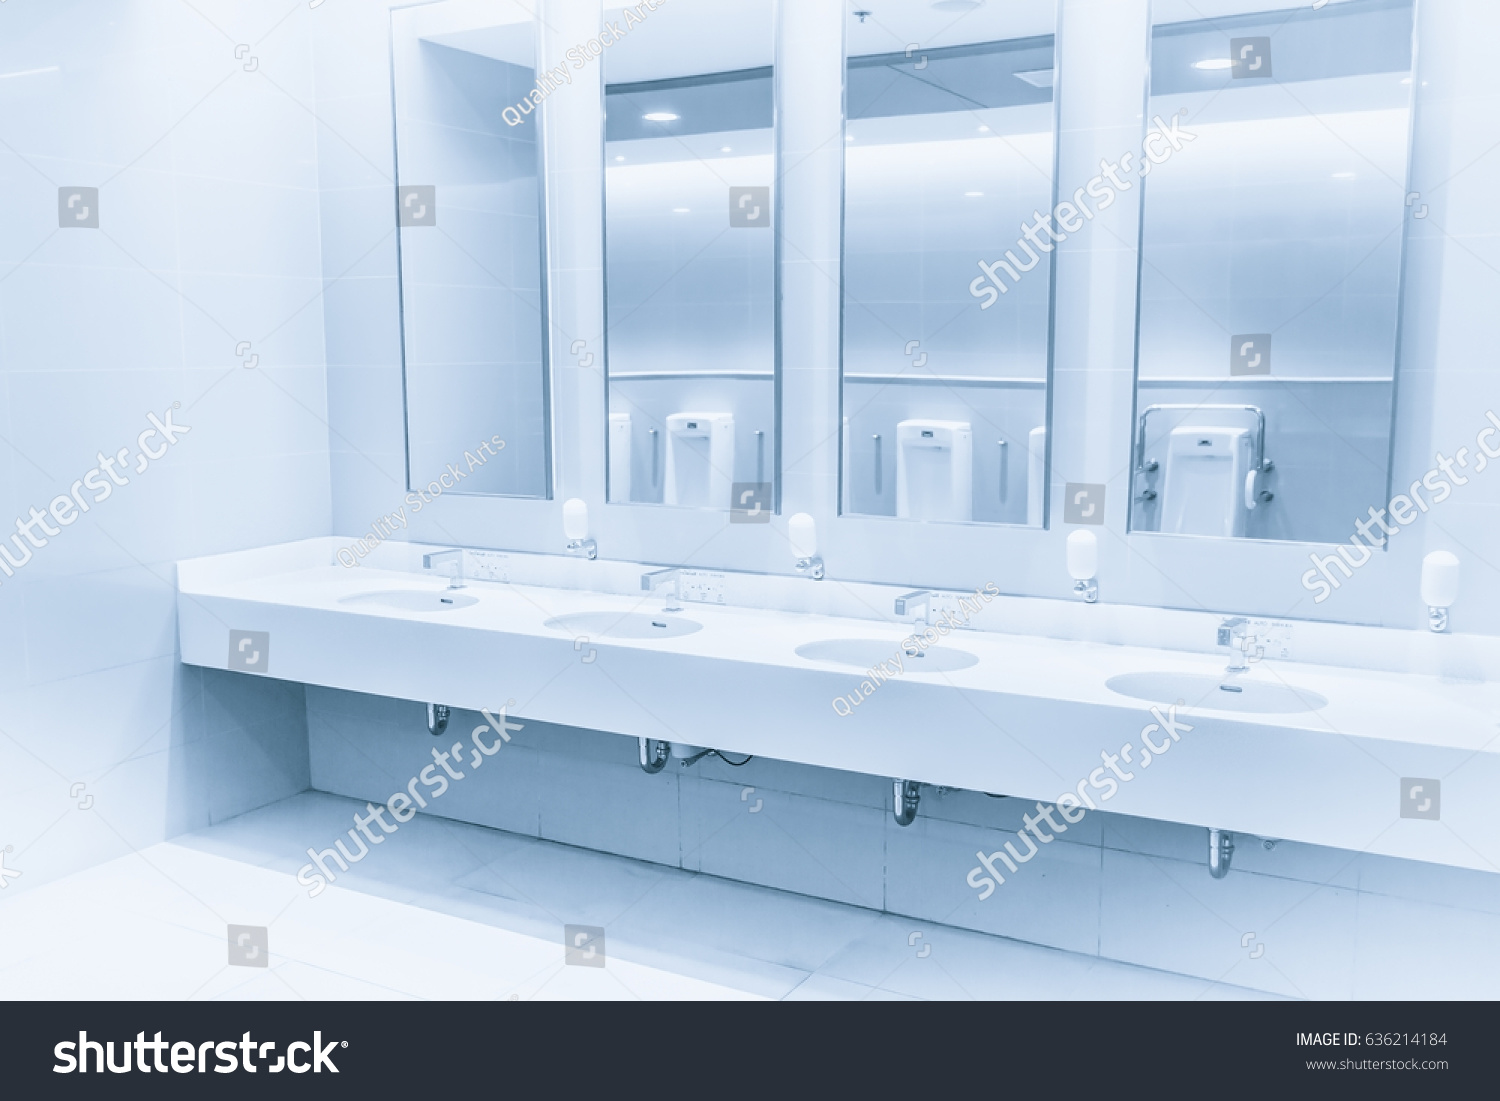 Clean New Modern Interior Toilet Sink Stock Photo (Download Now ...